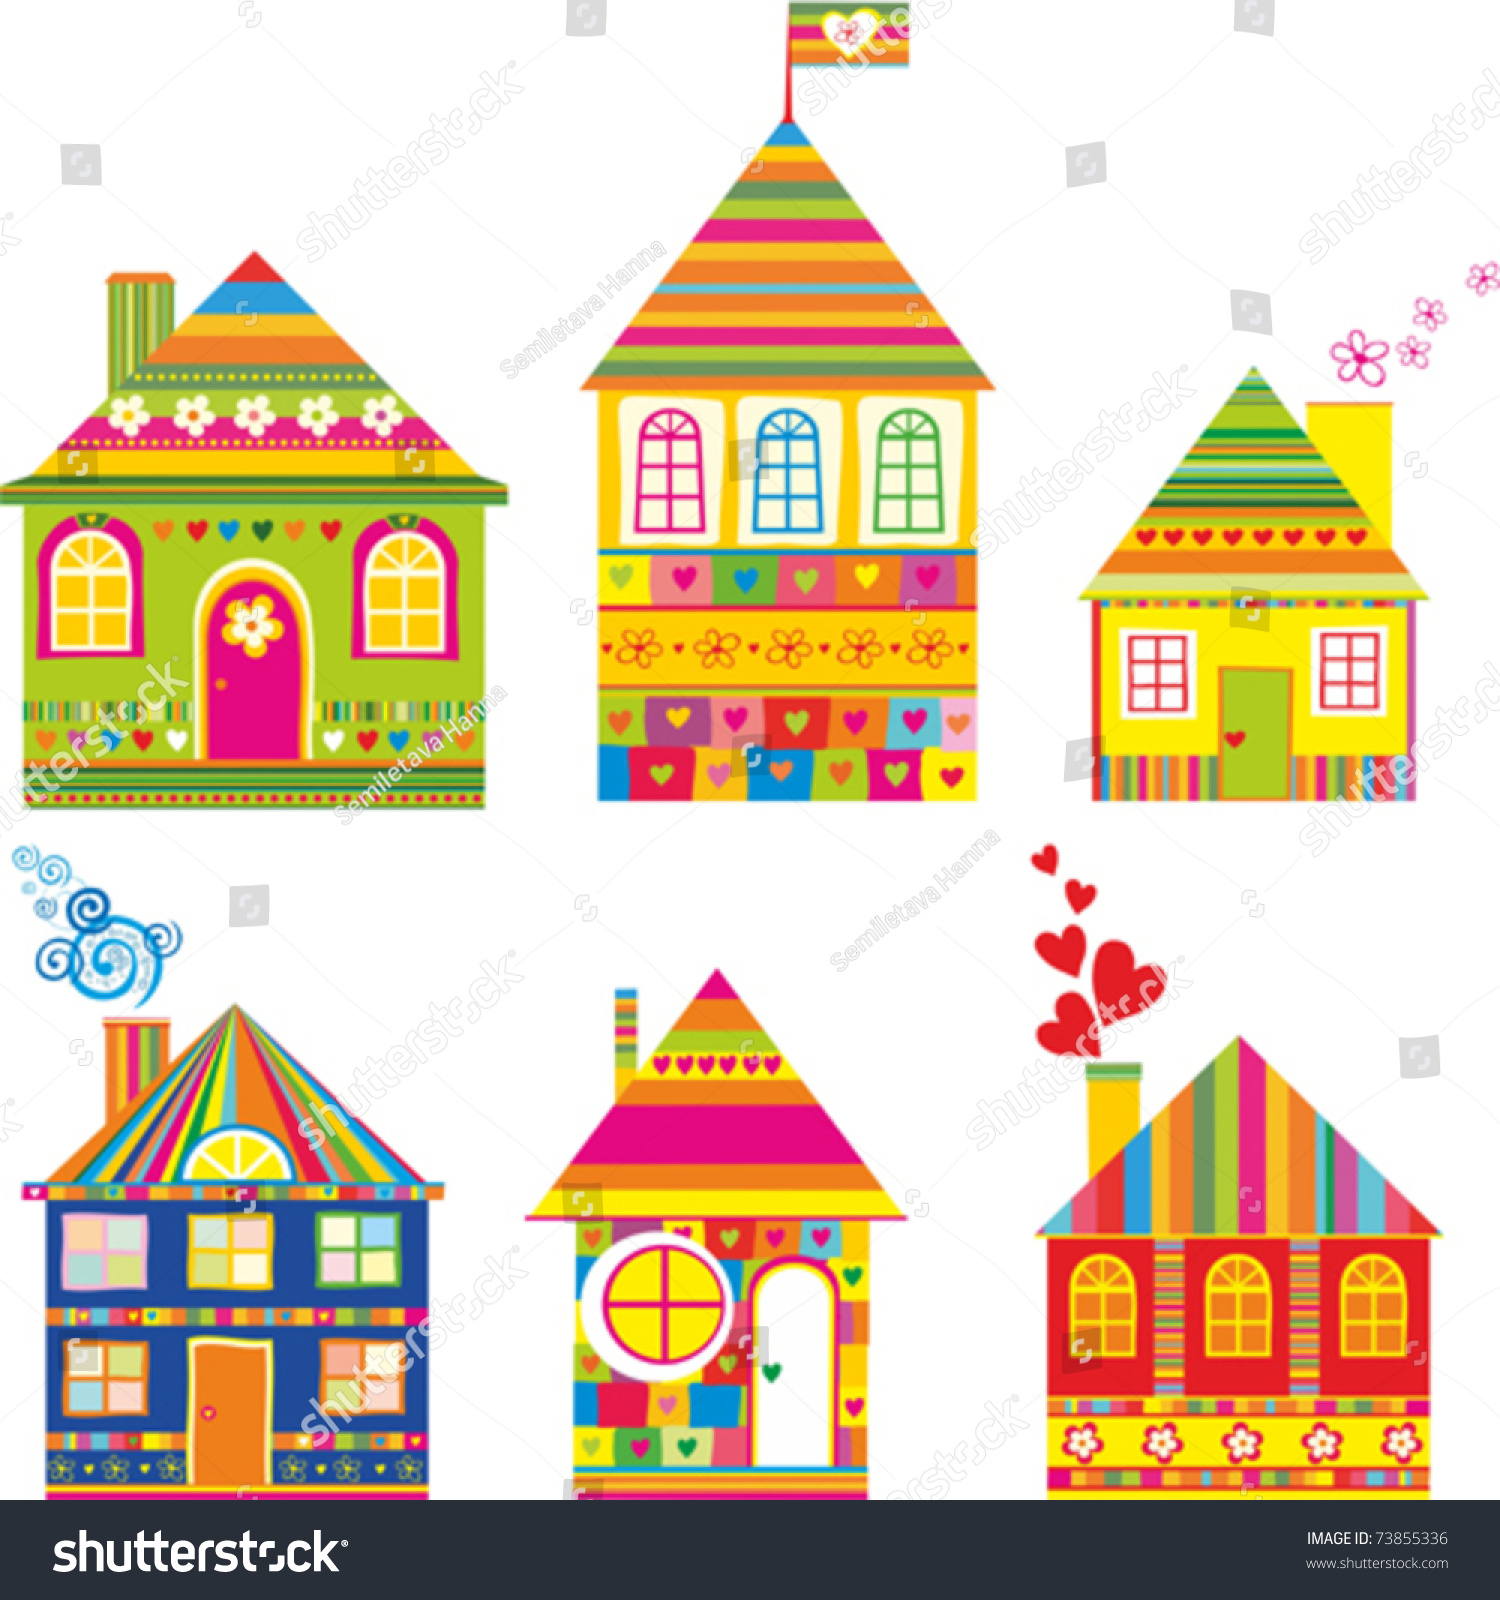 Tea party background royalty free stock photo image 28839215 - Collection Of Cute Houses In A Whimsical Childlike Style Isolated On White Background Vector